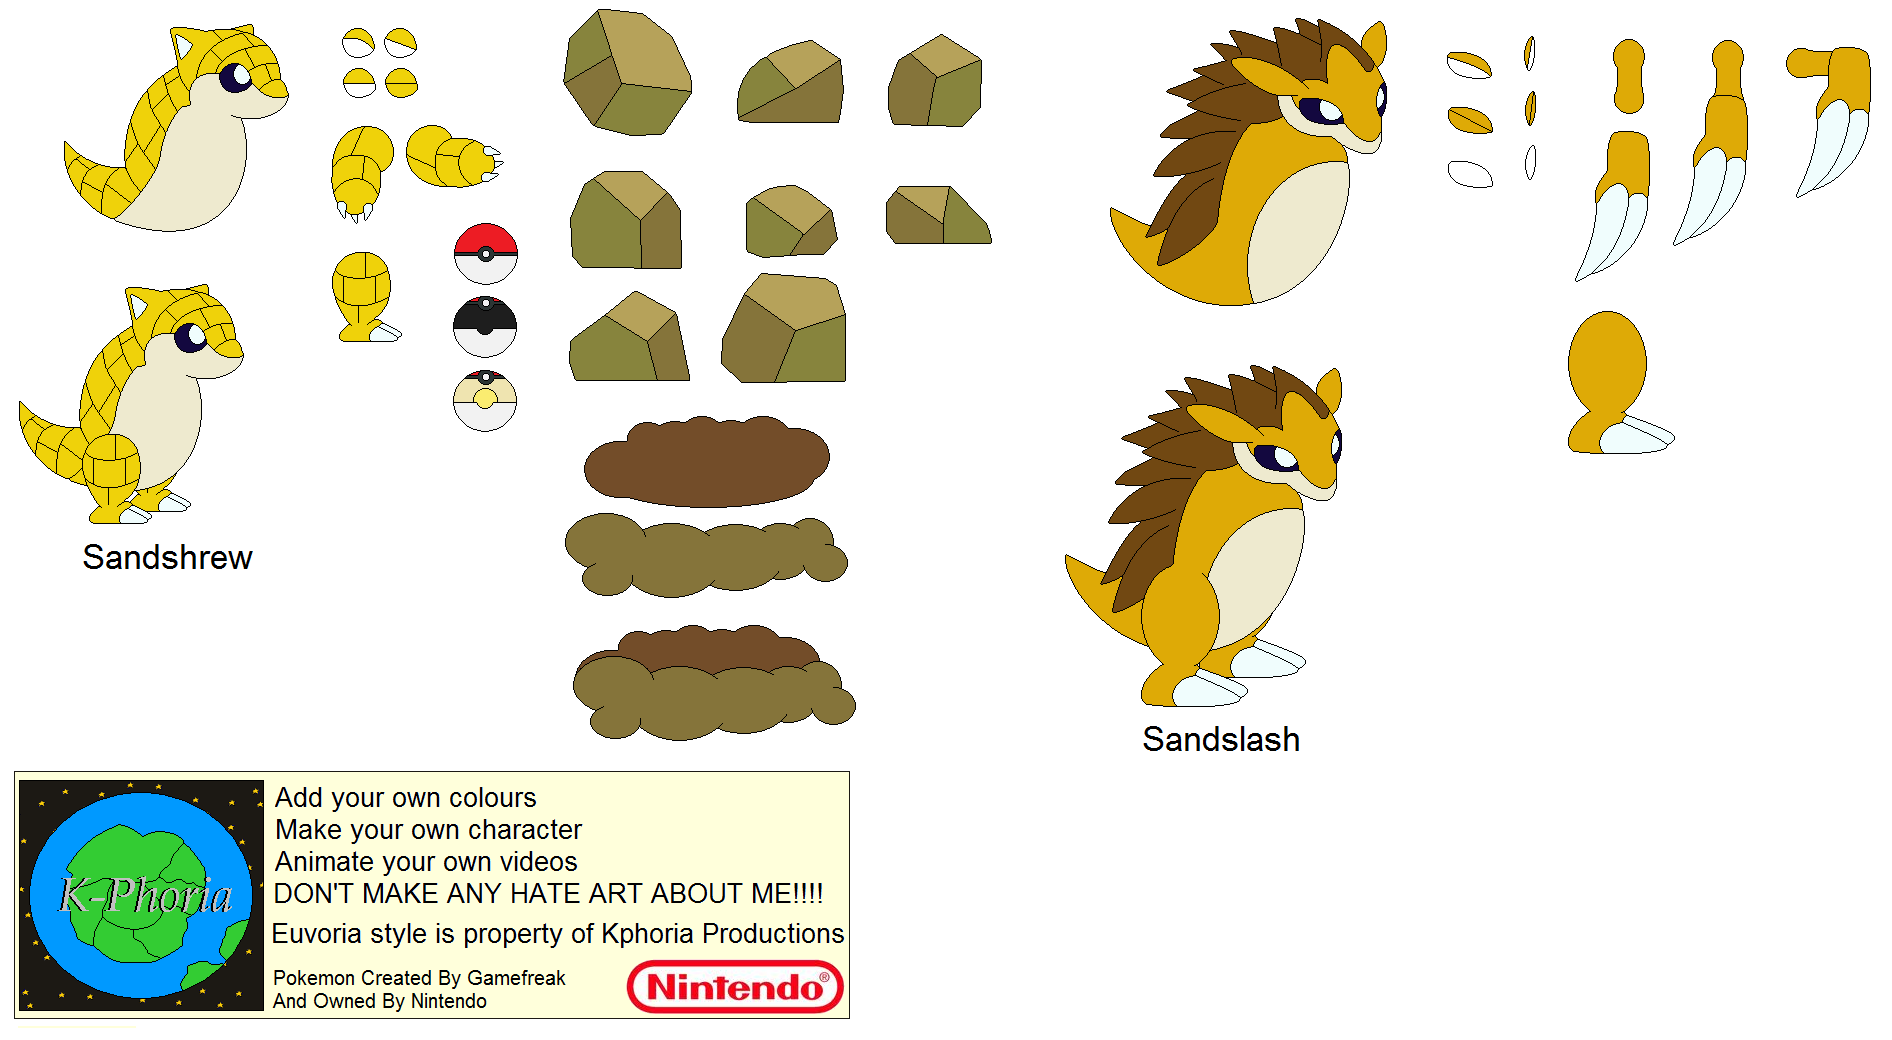 Character Builder-Sandshrew by Kphoria on DeviantArt